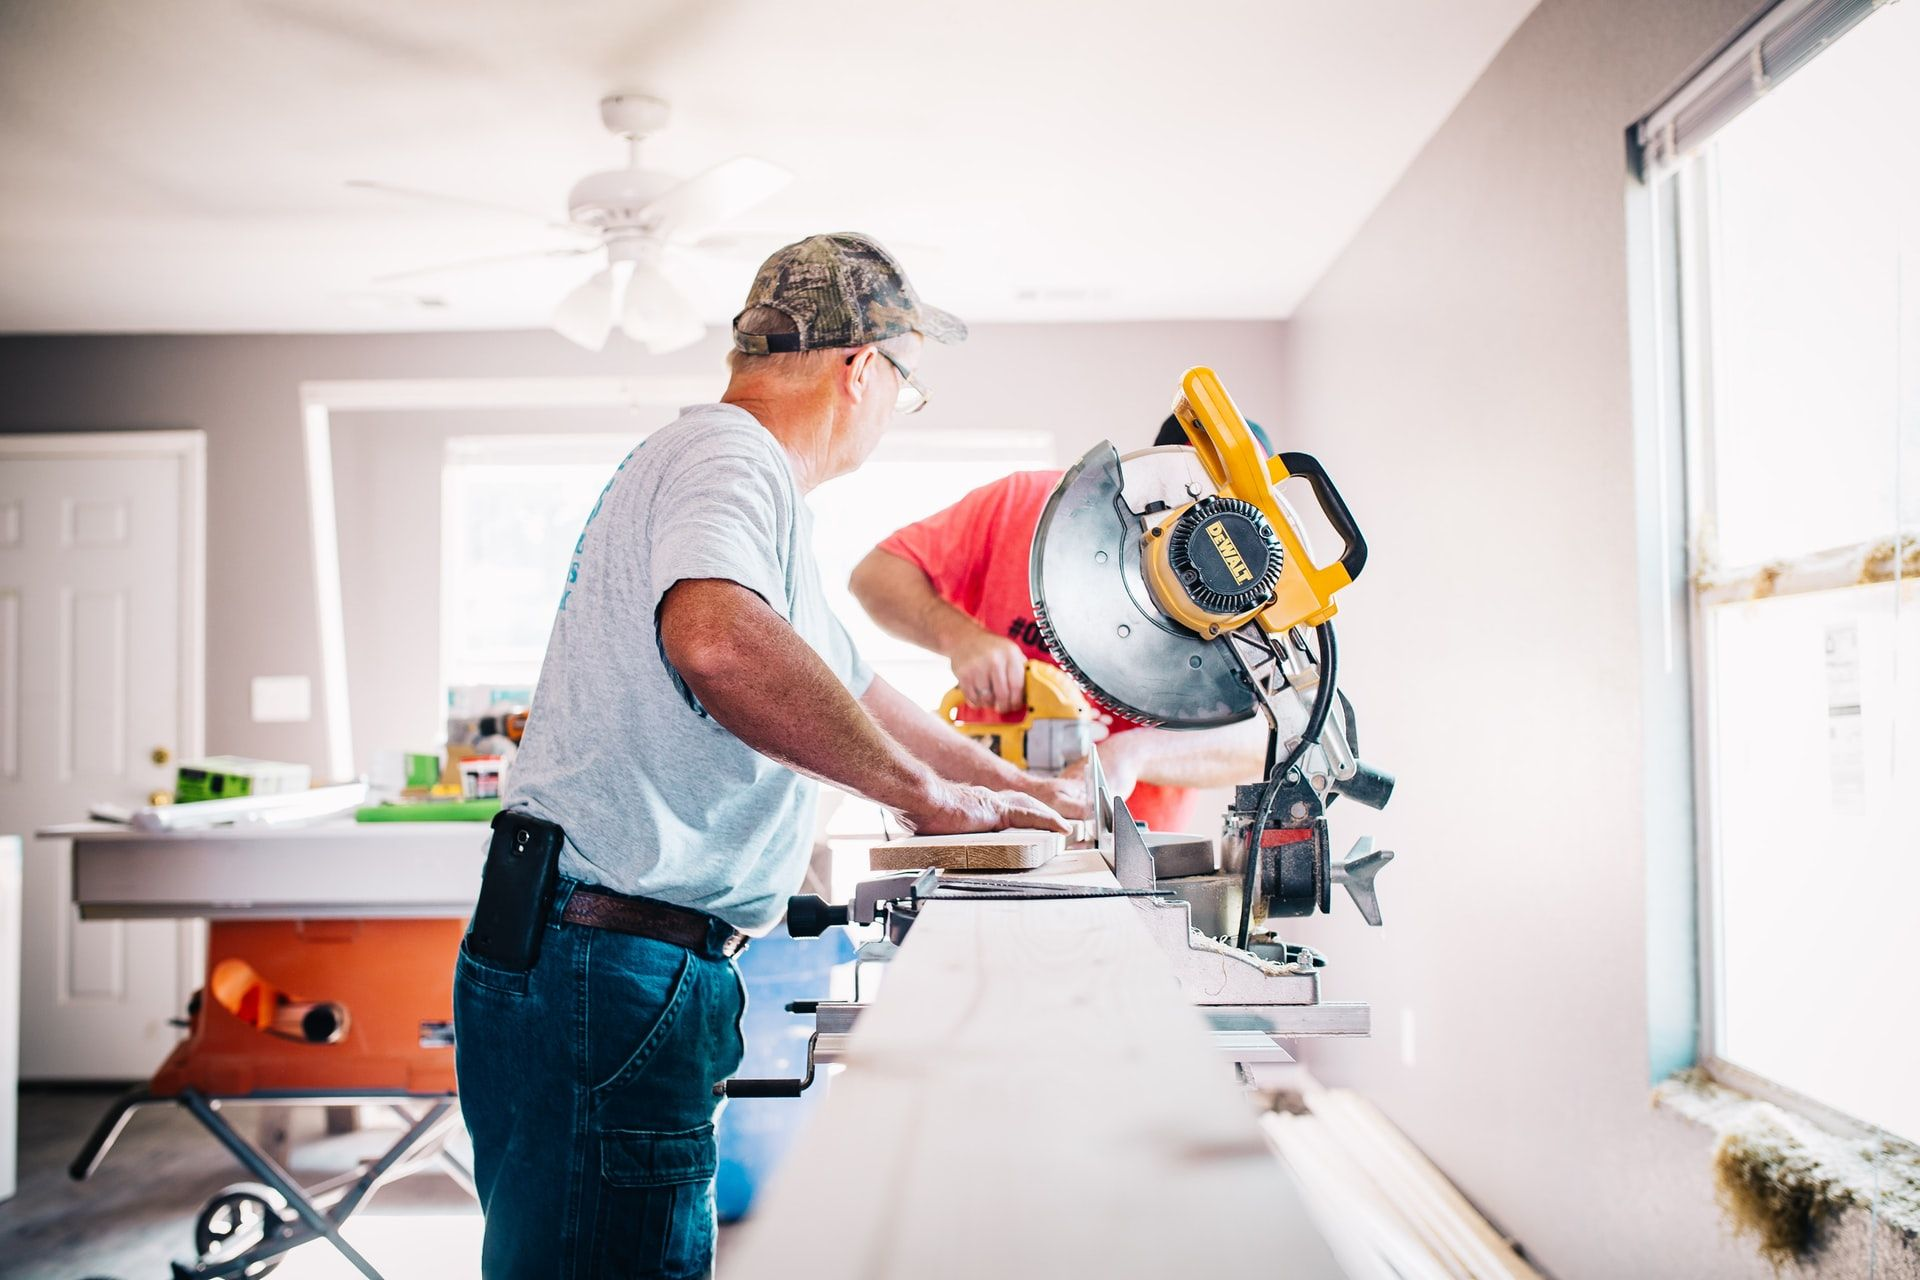 Know Your Kitchen Contractors Credentials